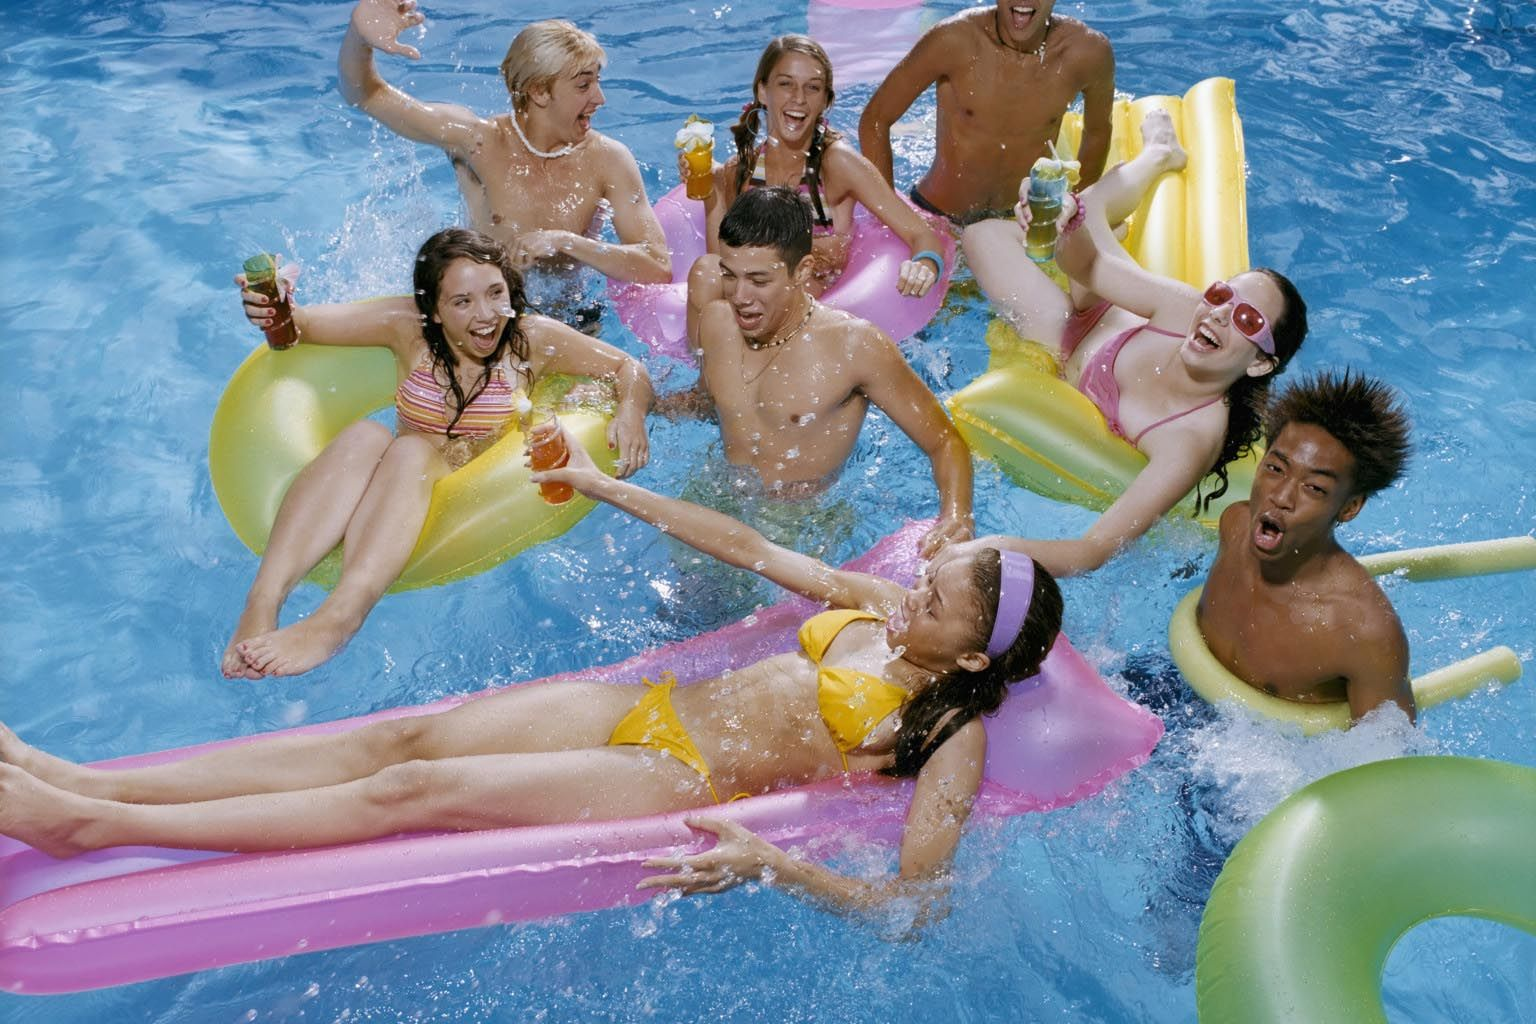 Hot Teen Pool Party   Home Party   Pinterest